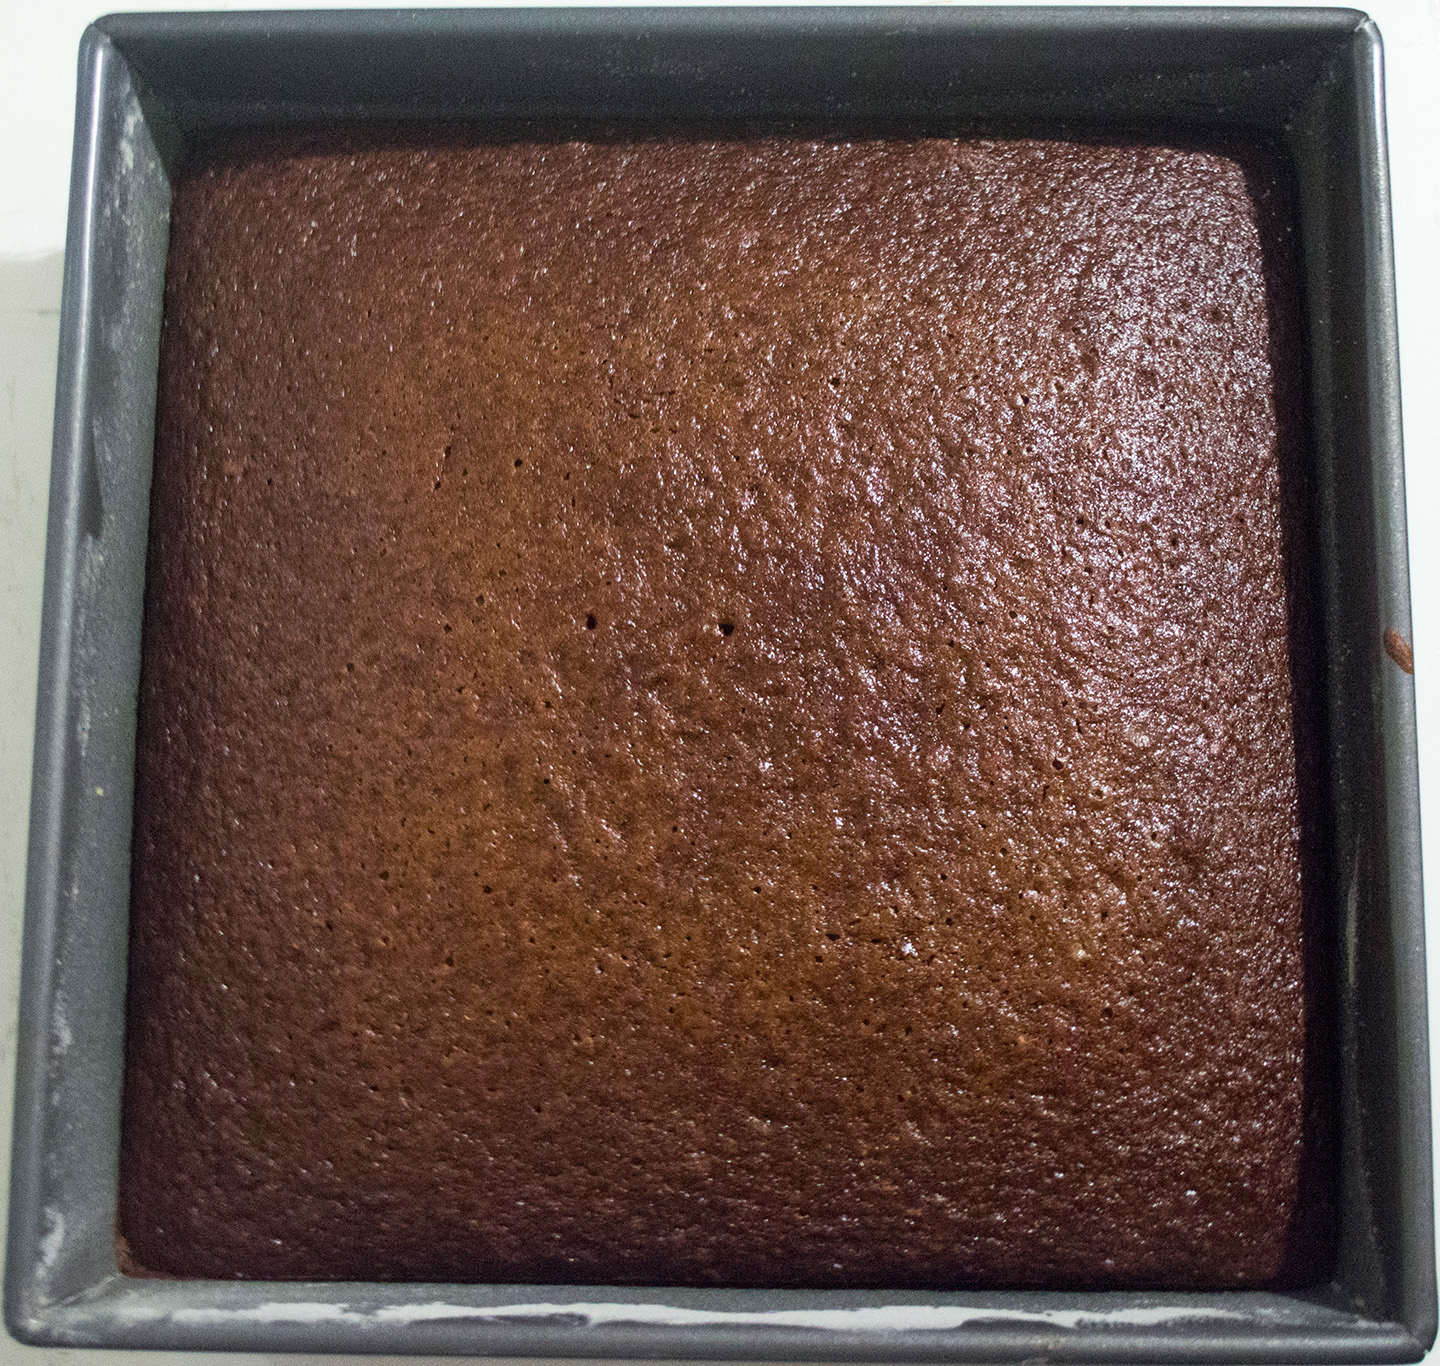 Gingerbread in a Square Pan